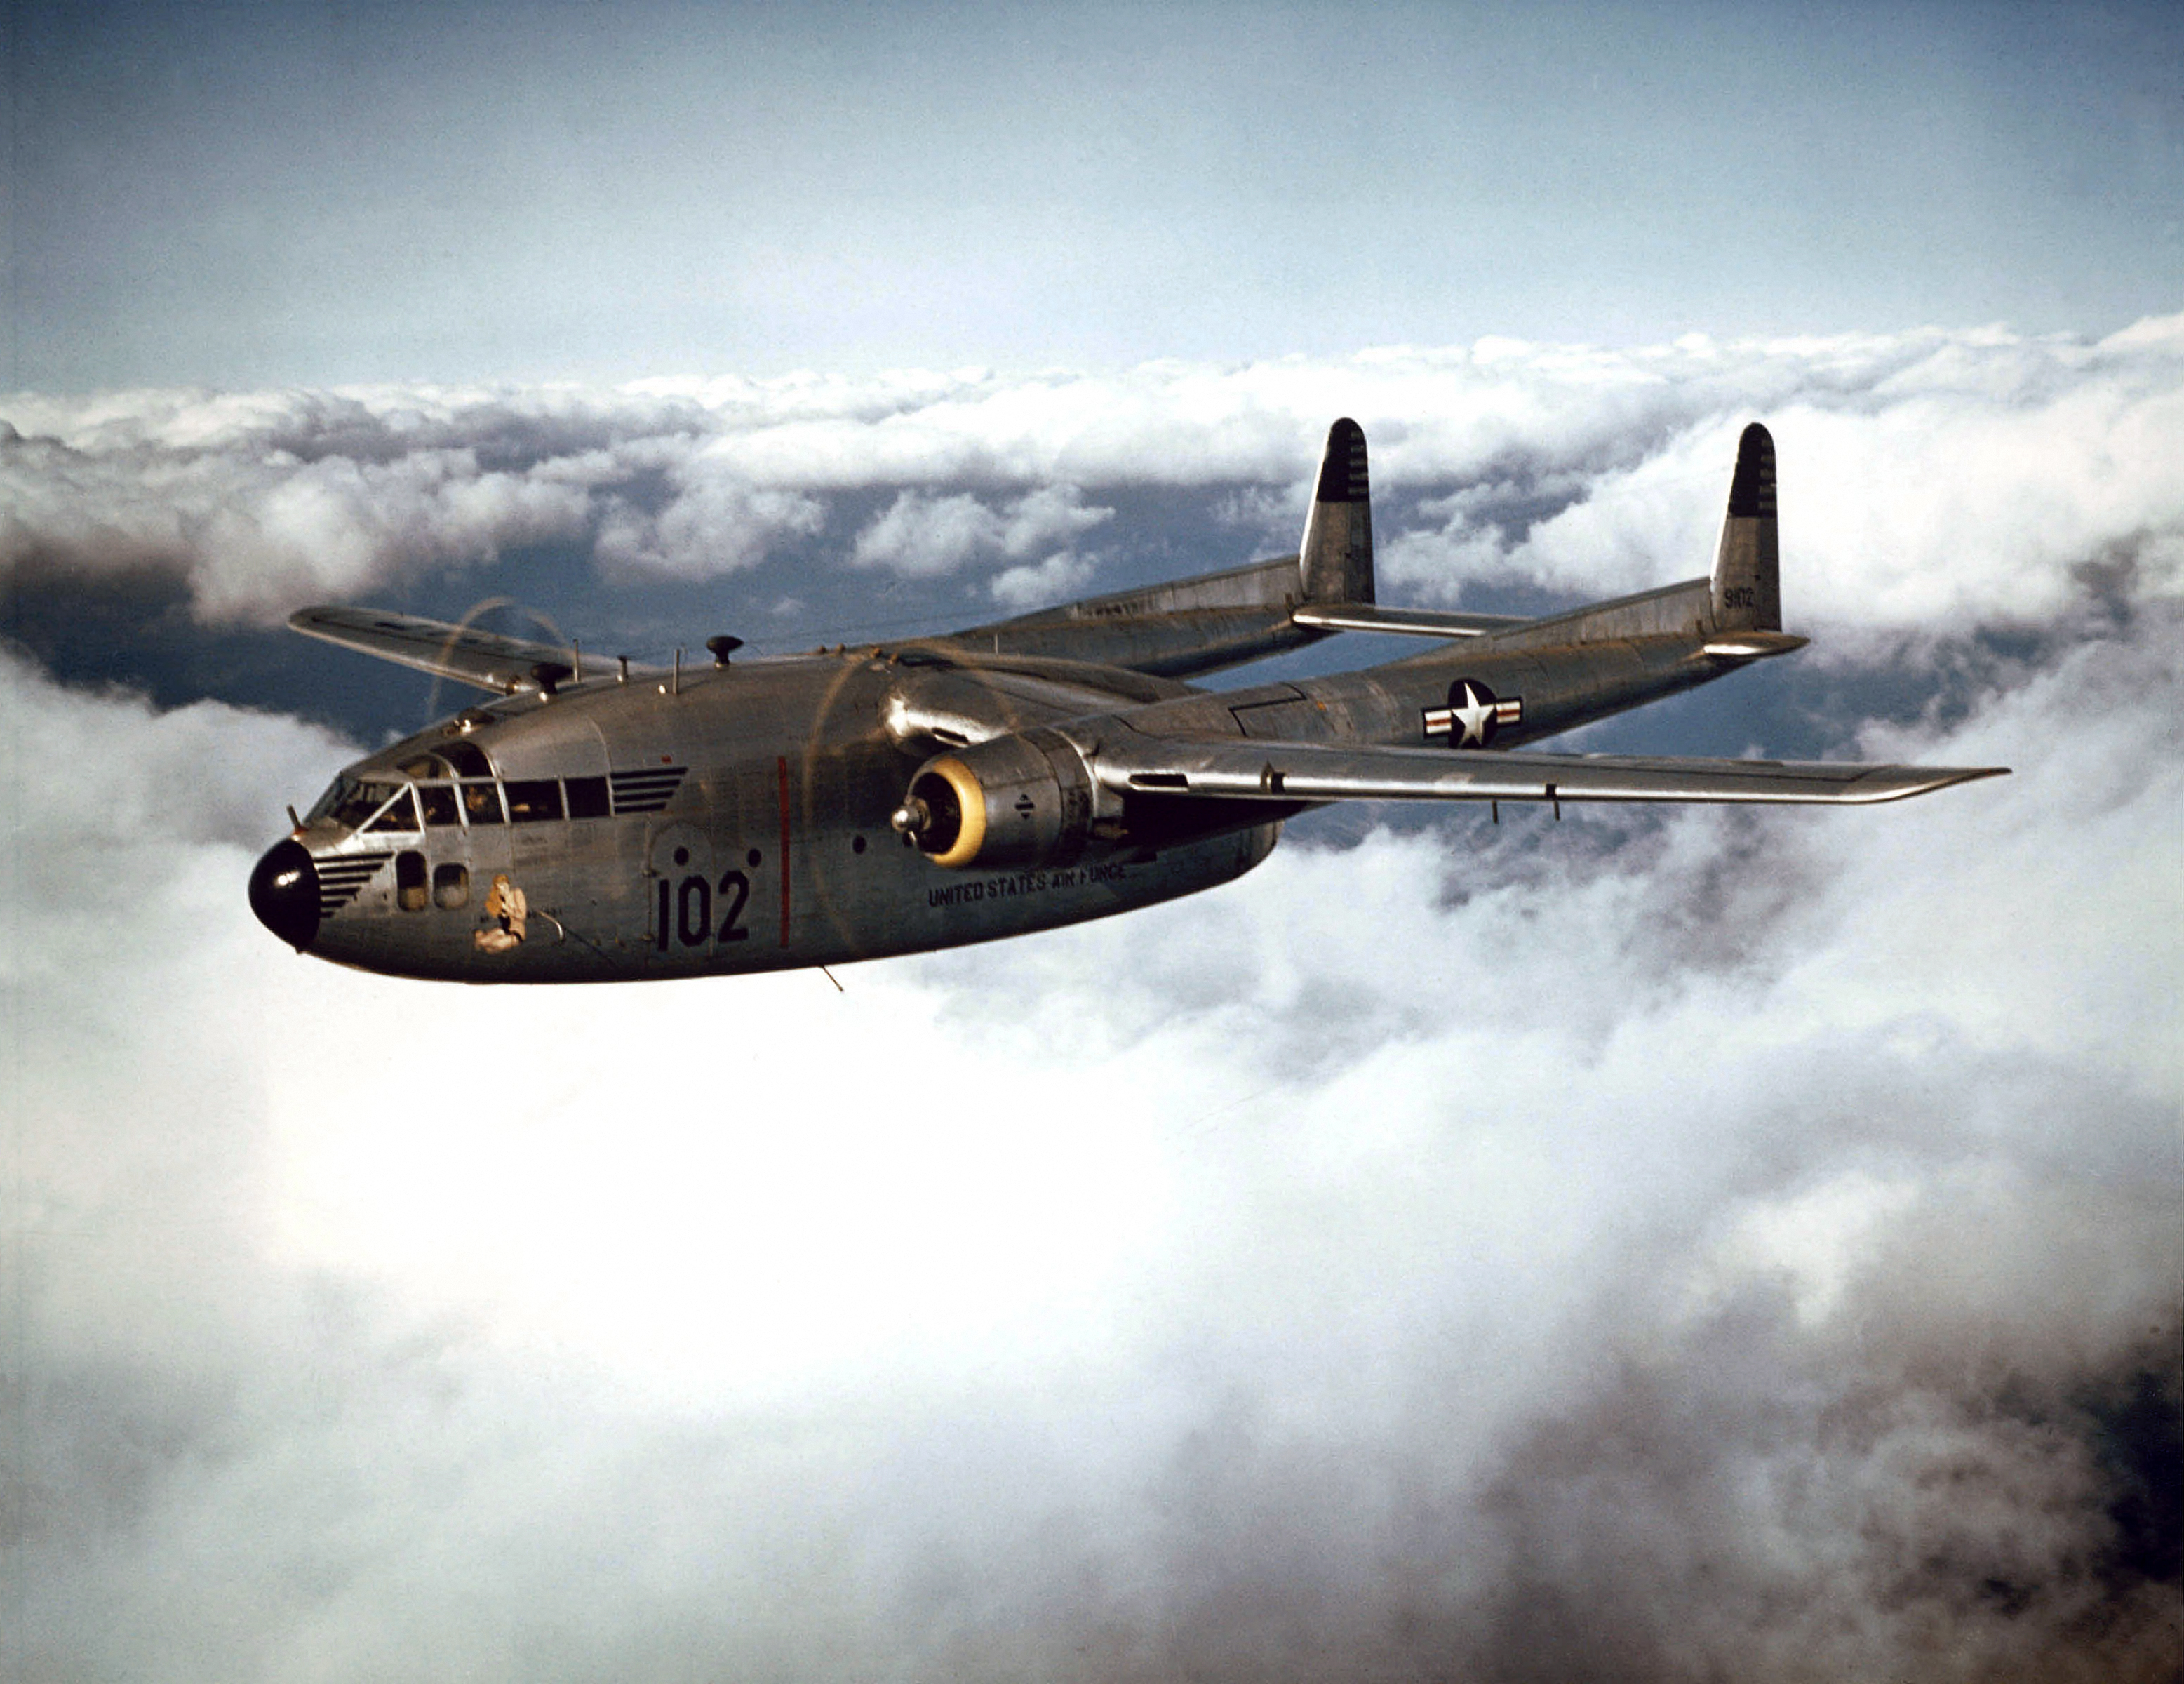 Fairchild_C-119B_of_the_314th_Troop_Carrier_Group_in_flight,1952(021001-O-9999G-016).jpg